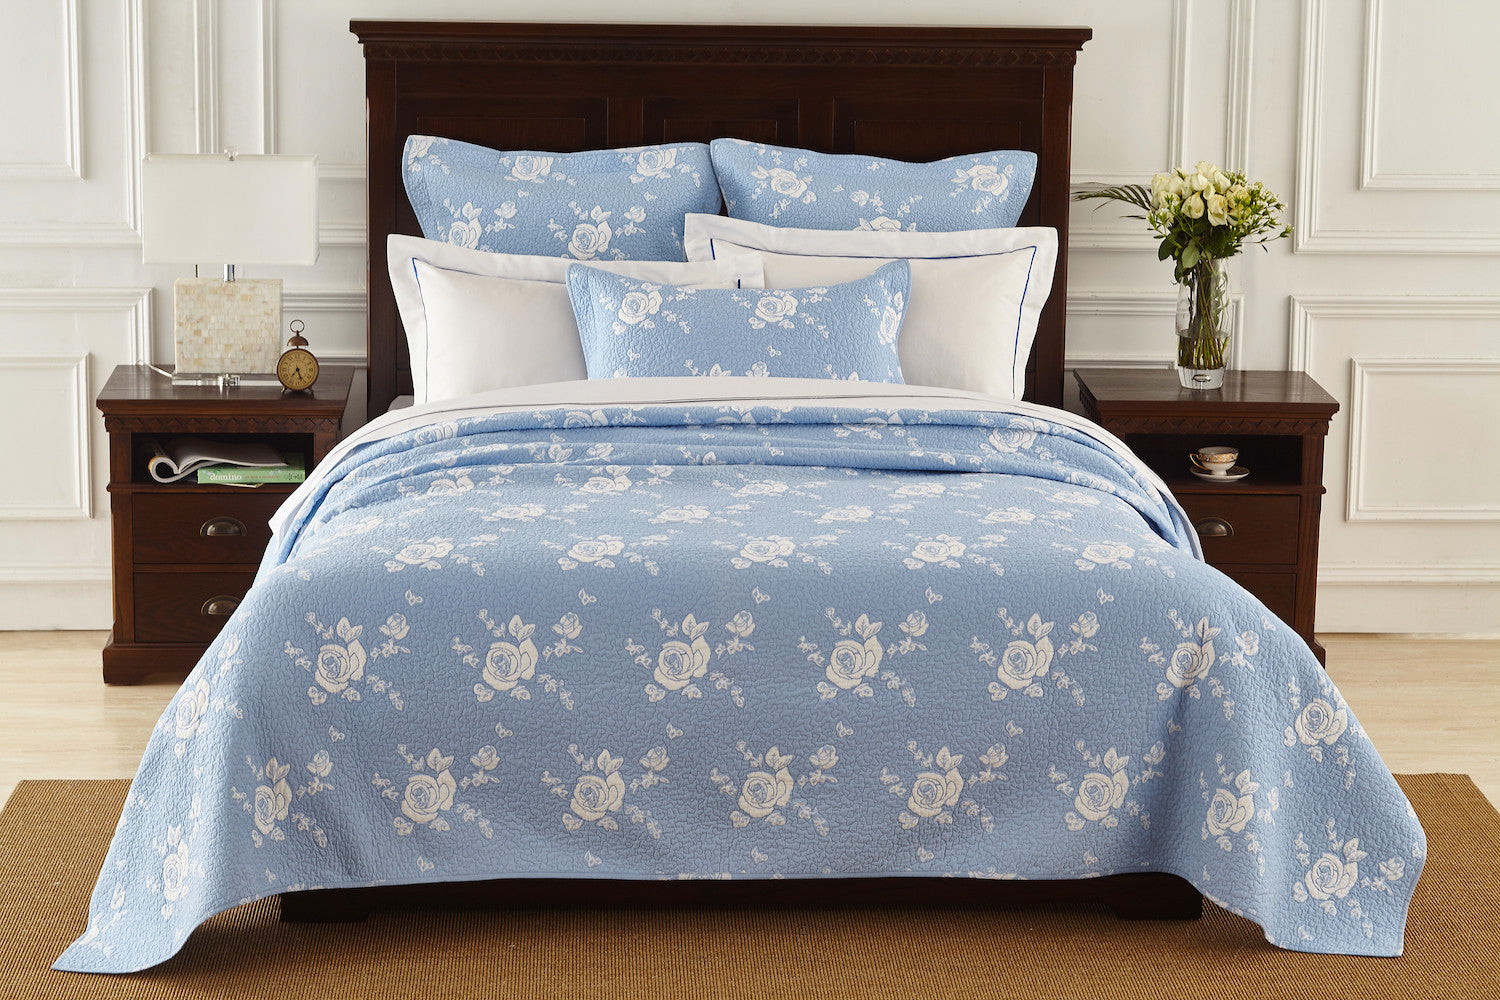 light bedroom grey decor canopy stitch the box bedding sham products diamond inspiration blue quilt crane and